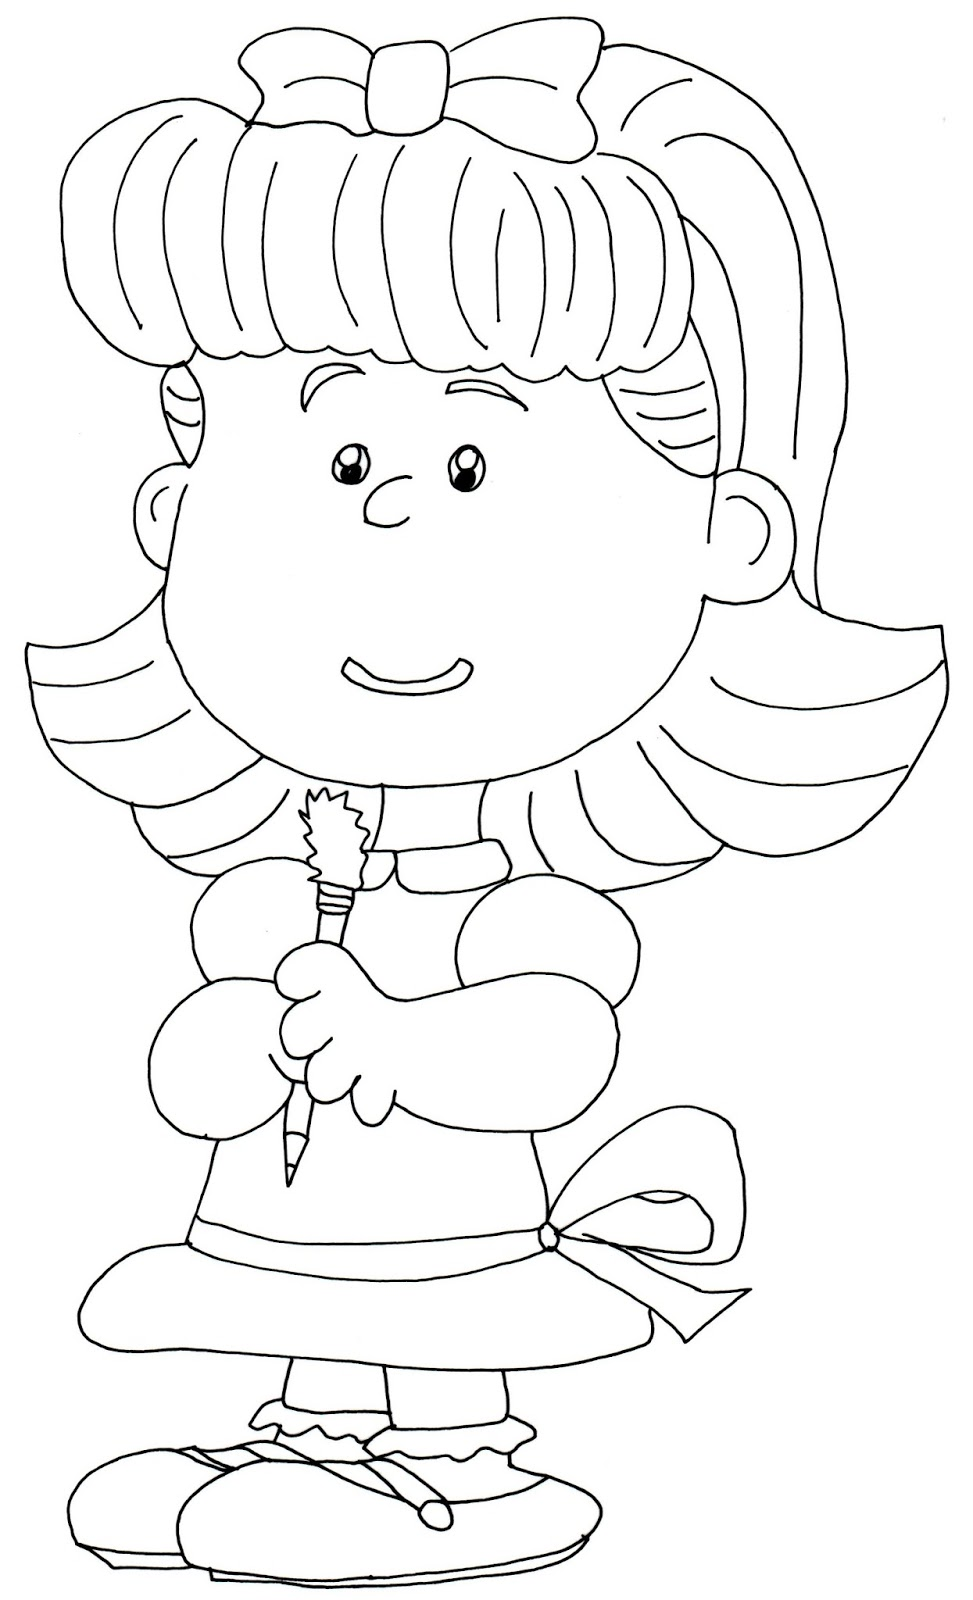 973x1600 Free Charlie Brown Snoopy And Peanuts Coloring Pages